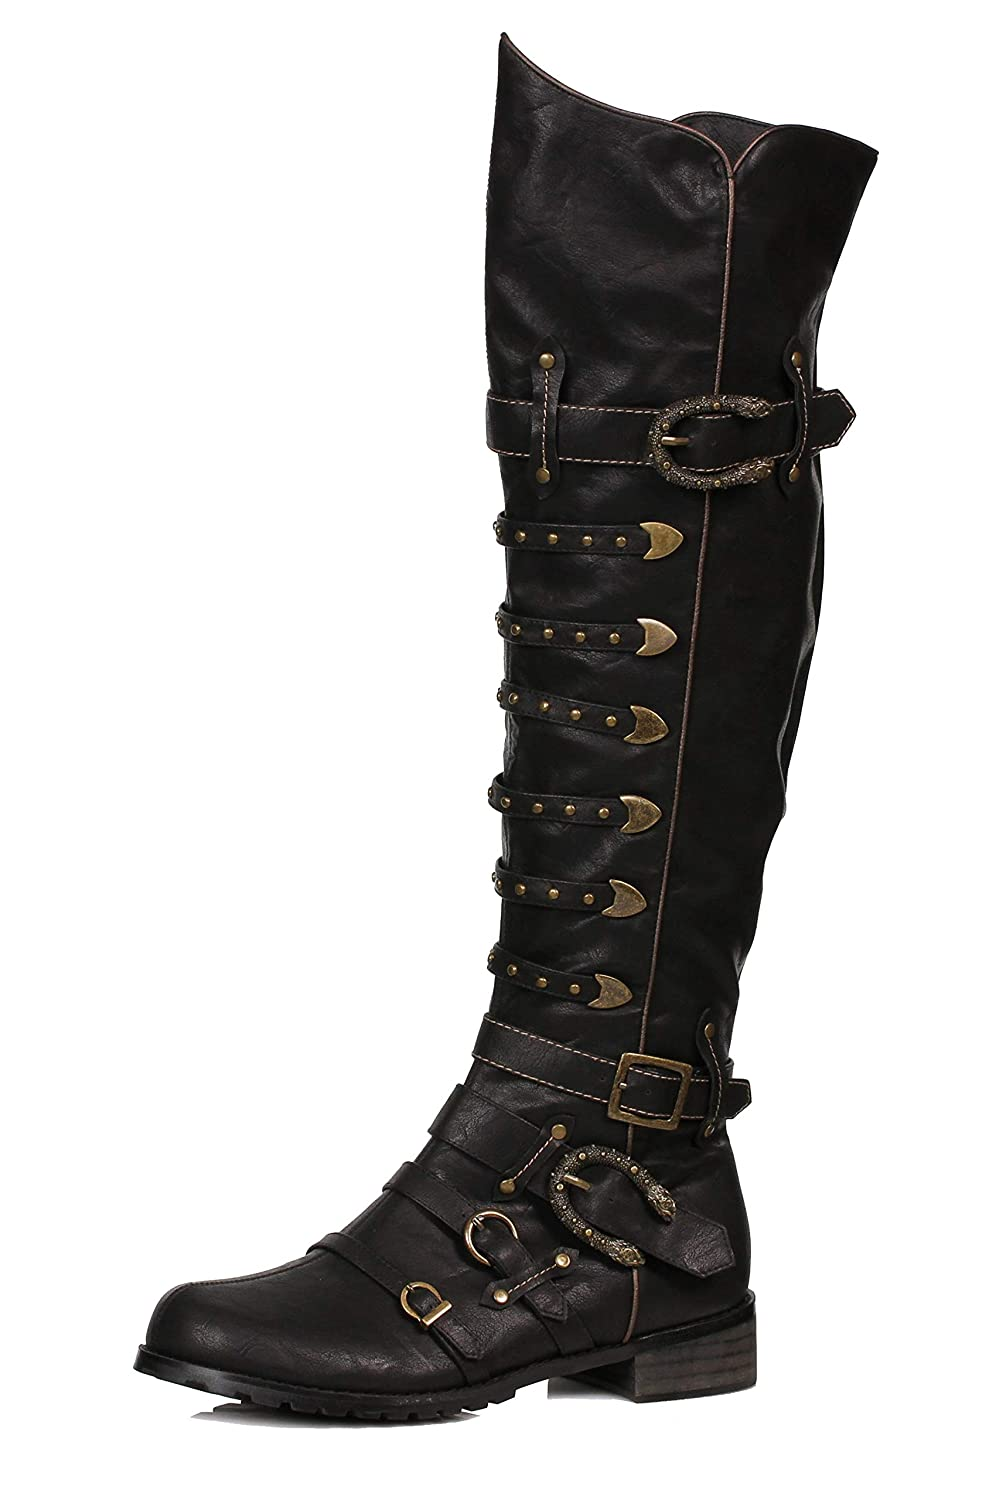 Men's Steampunk Costume Essentials Ellie Shoes Mens 158-Wilbur Steampunk Costume Boots $124.00 AT vintagedancer.com